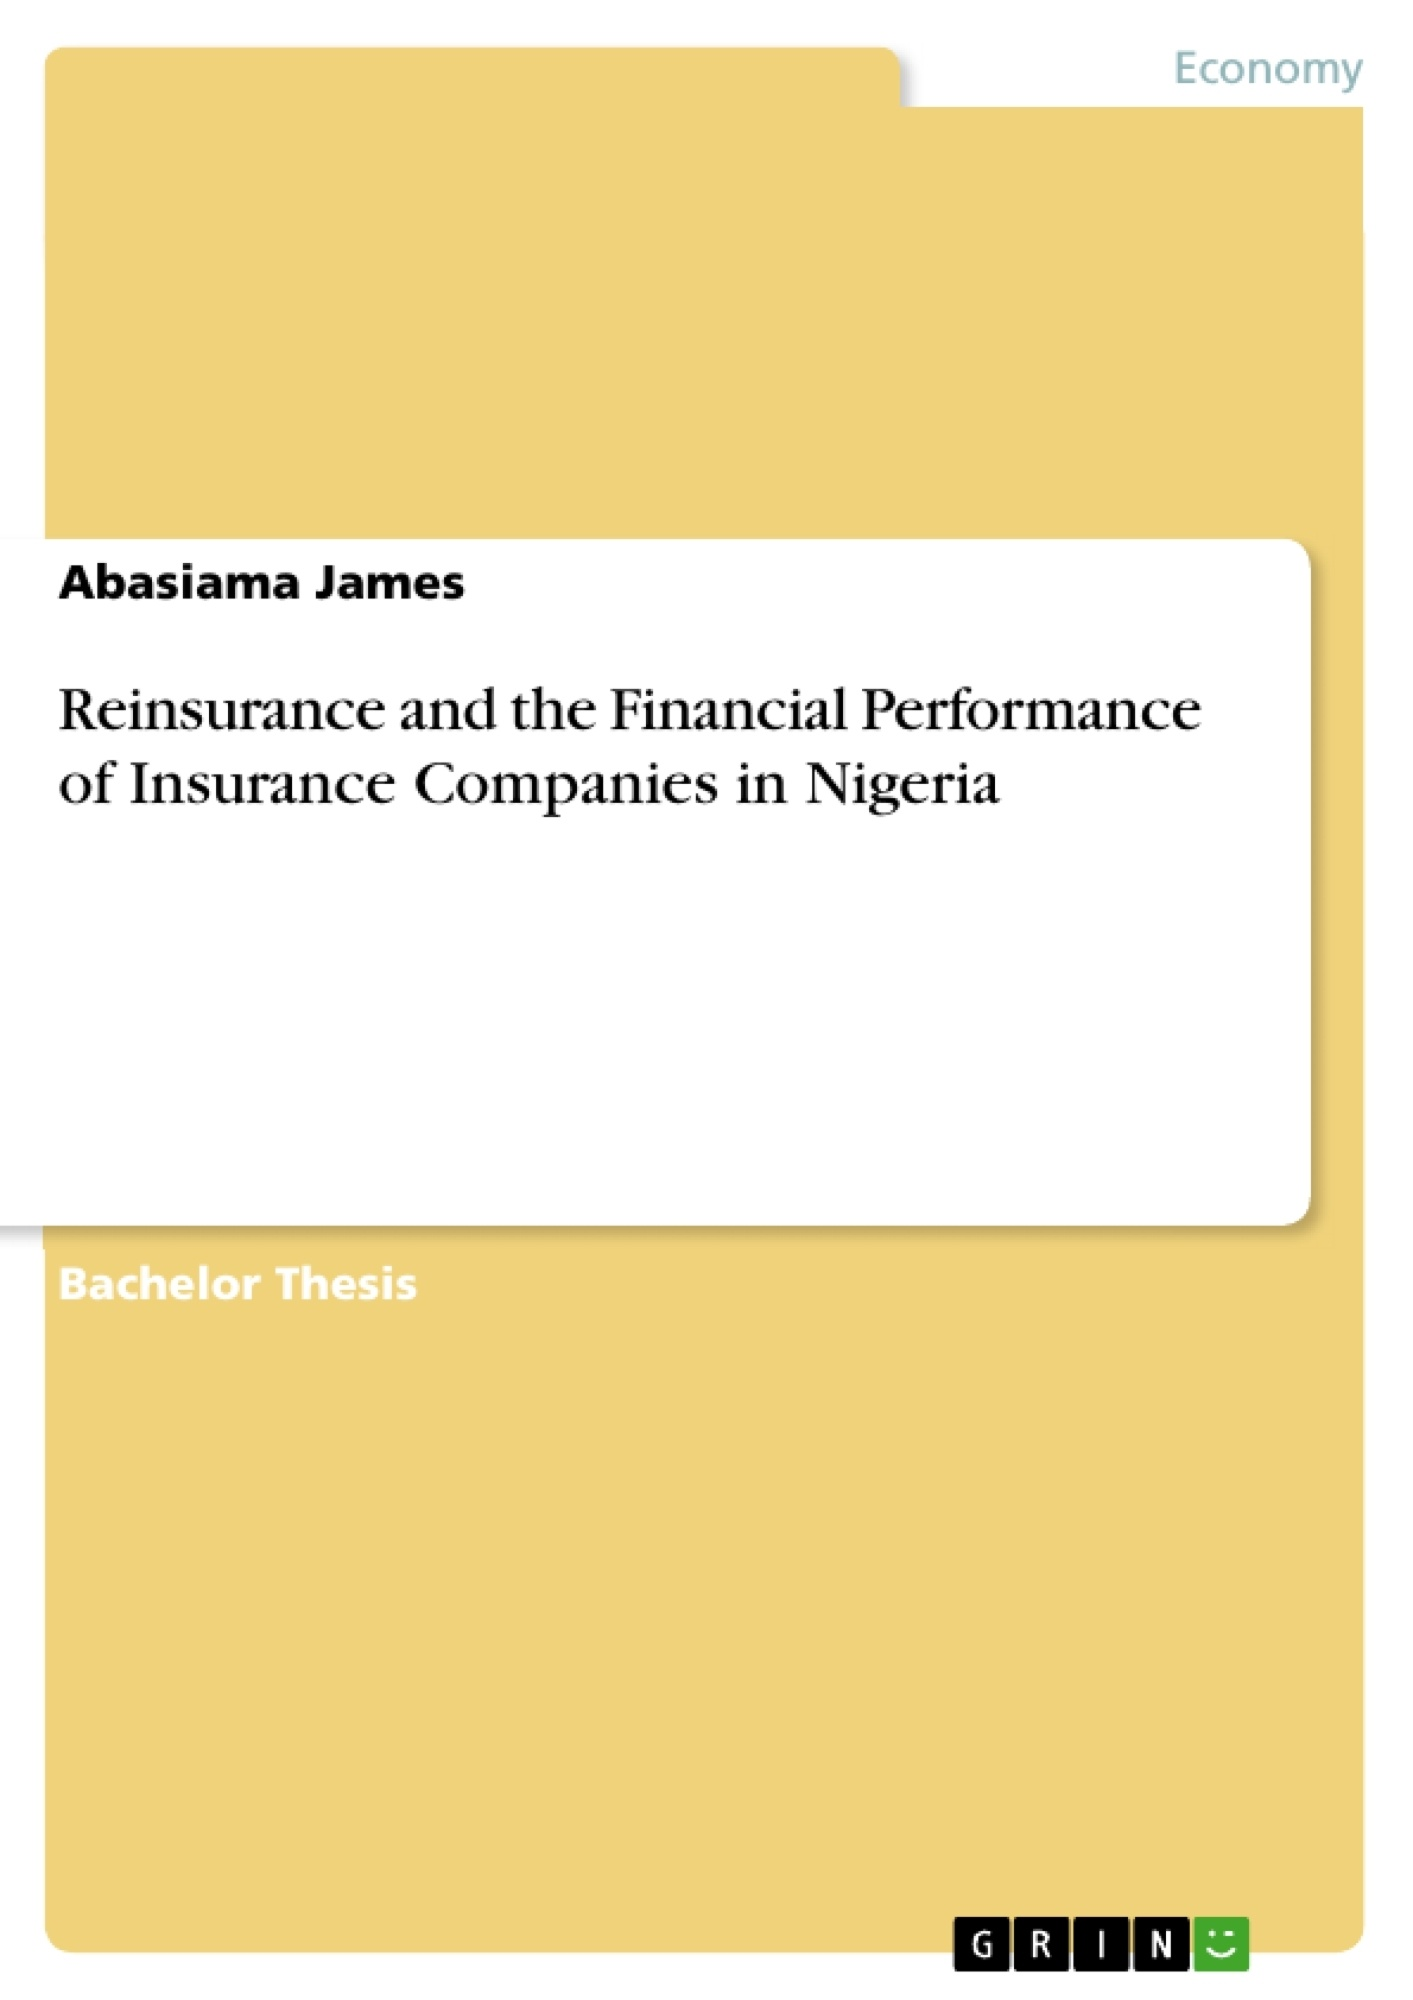 Title: Reinsurance and the Financial Performance of Insurance Companies in Nigeria